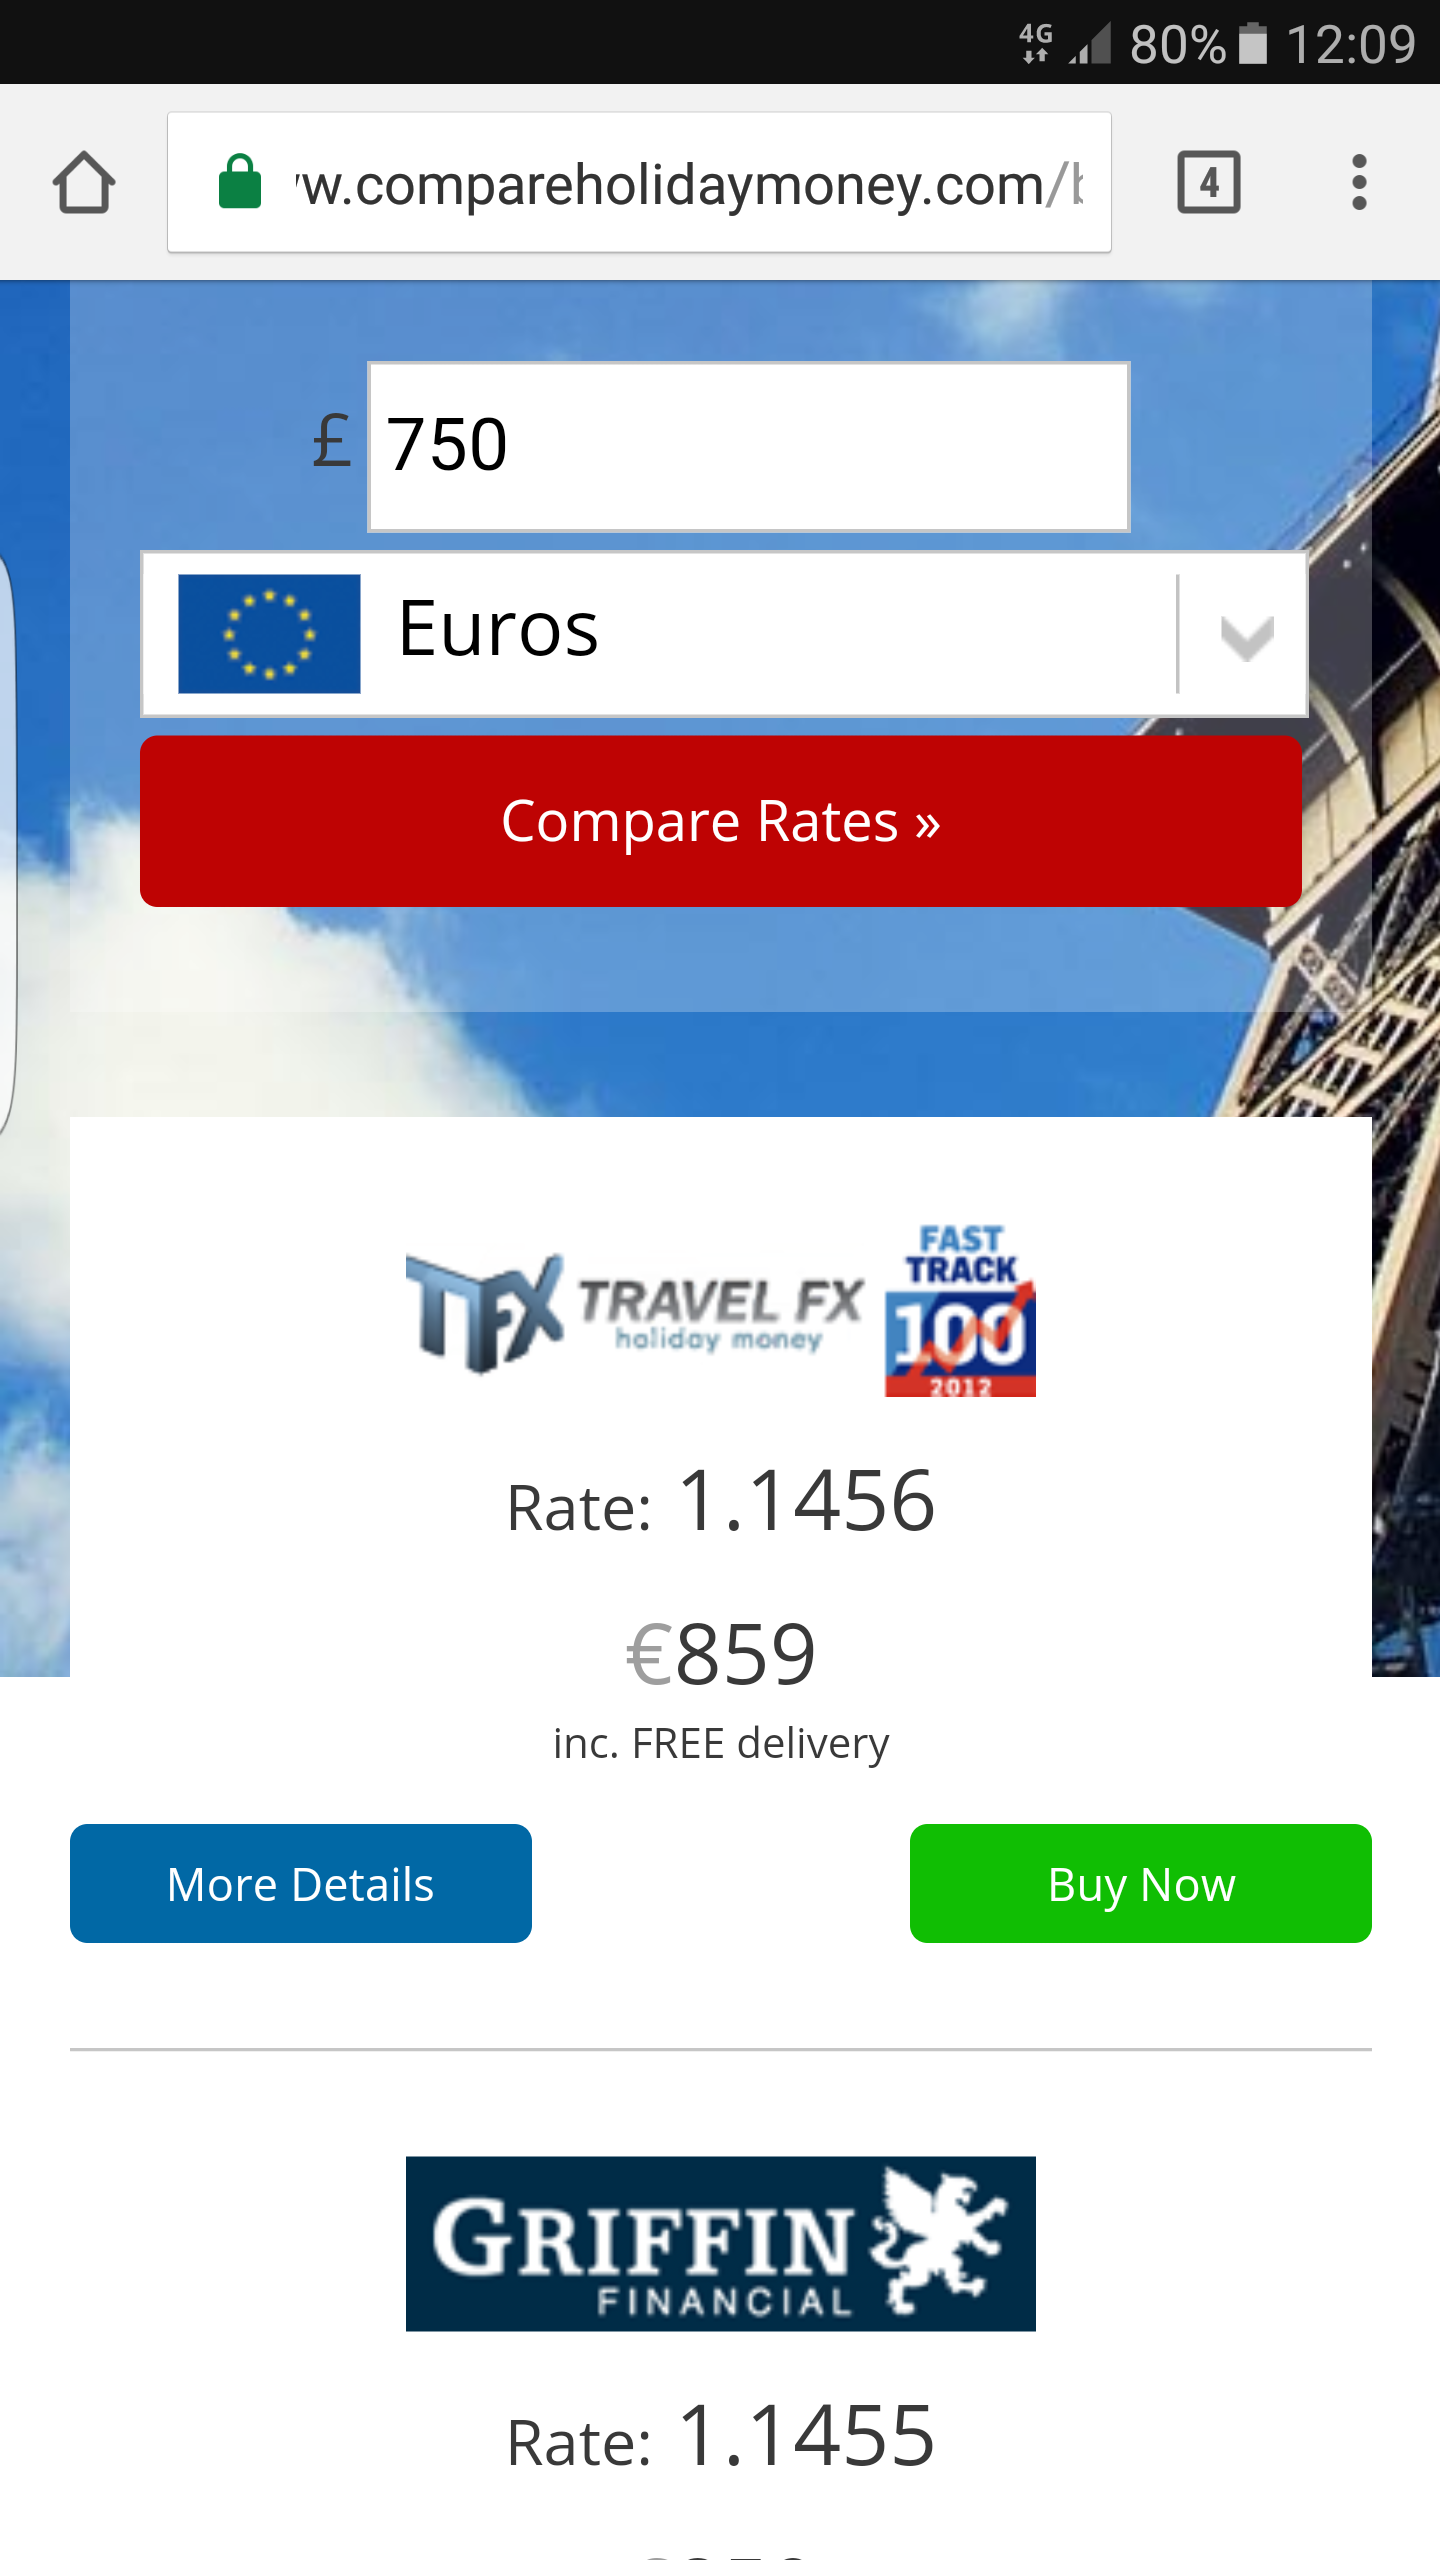 Travel fx reviews - Post office bureau de change exchange rates ...